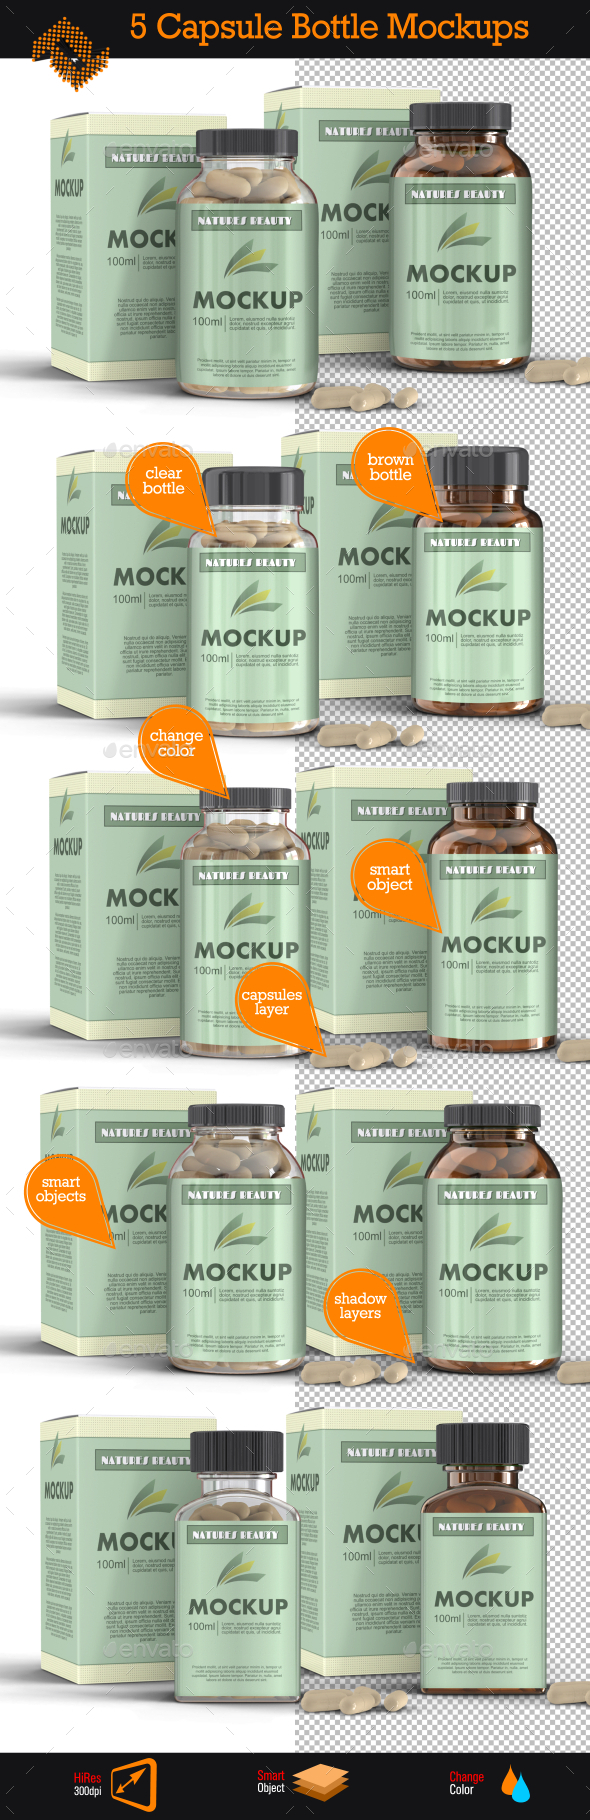 GraphicRiver 5 Supplement Capsule Bottle Mockups 10148118